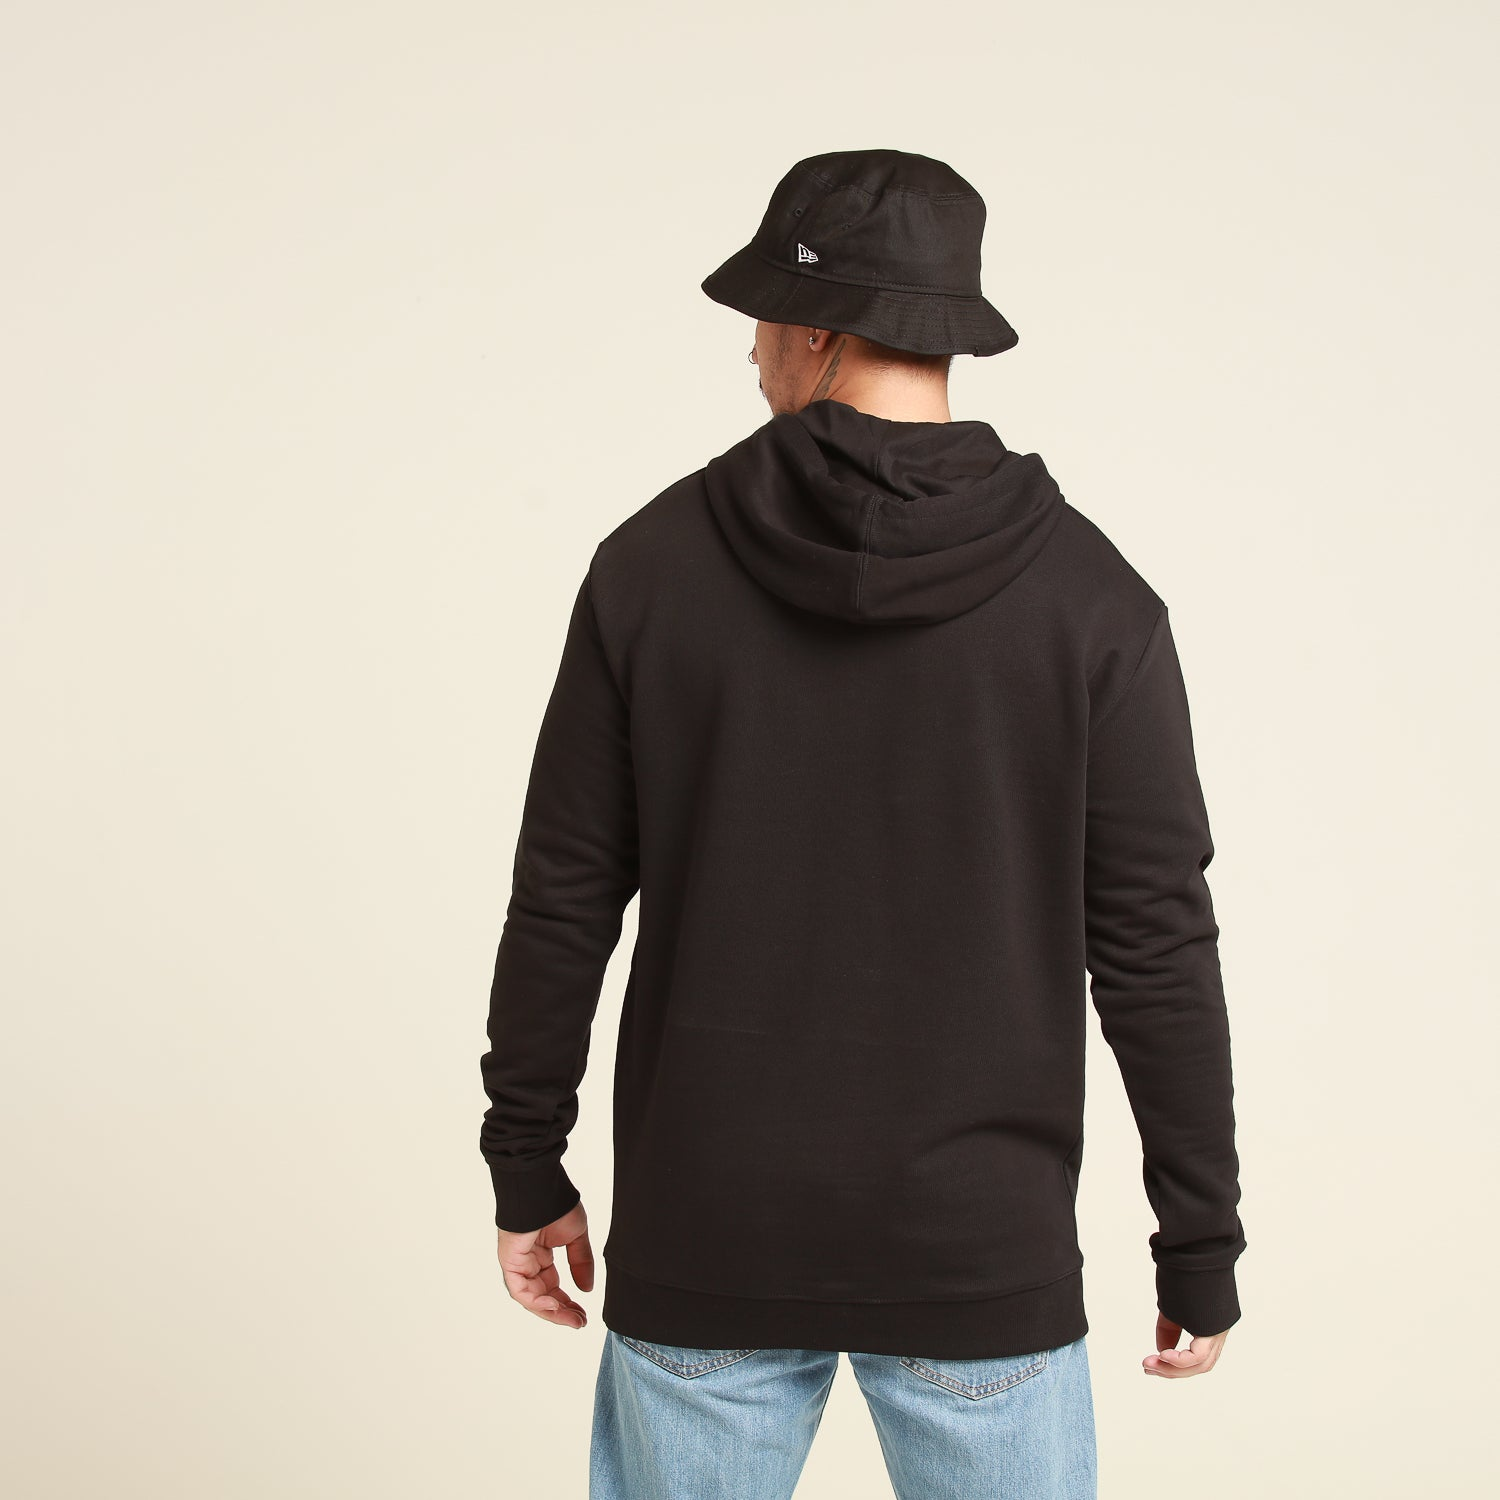 CL FATALITY HOOD - Black